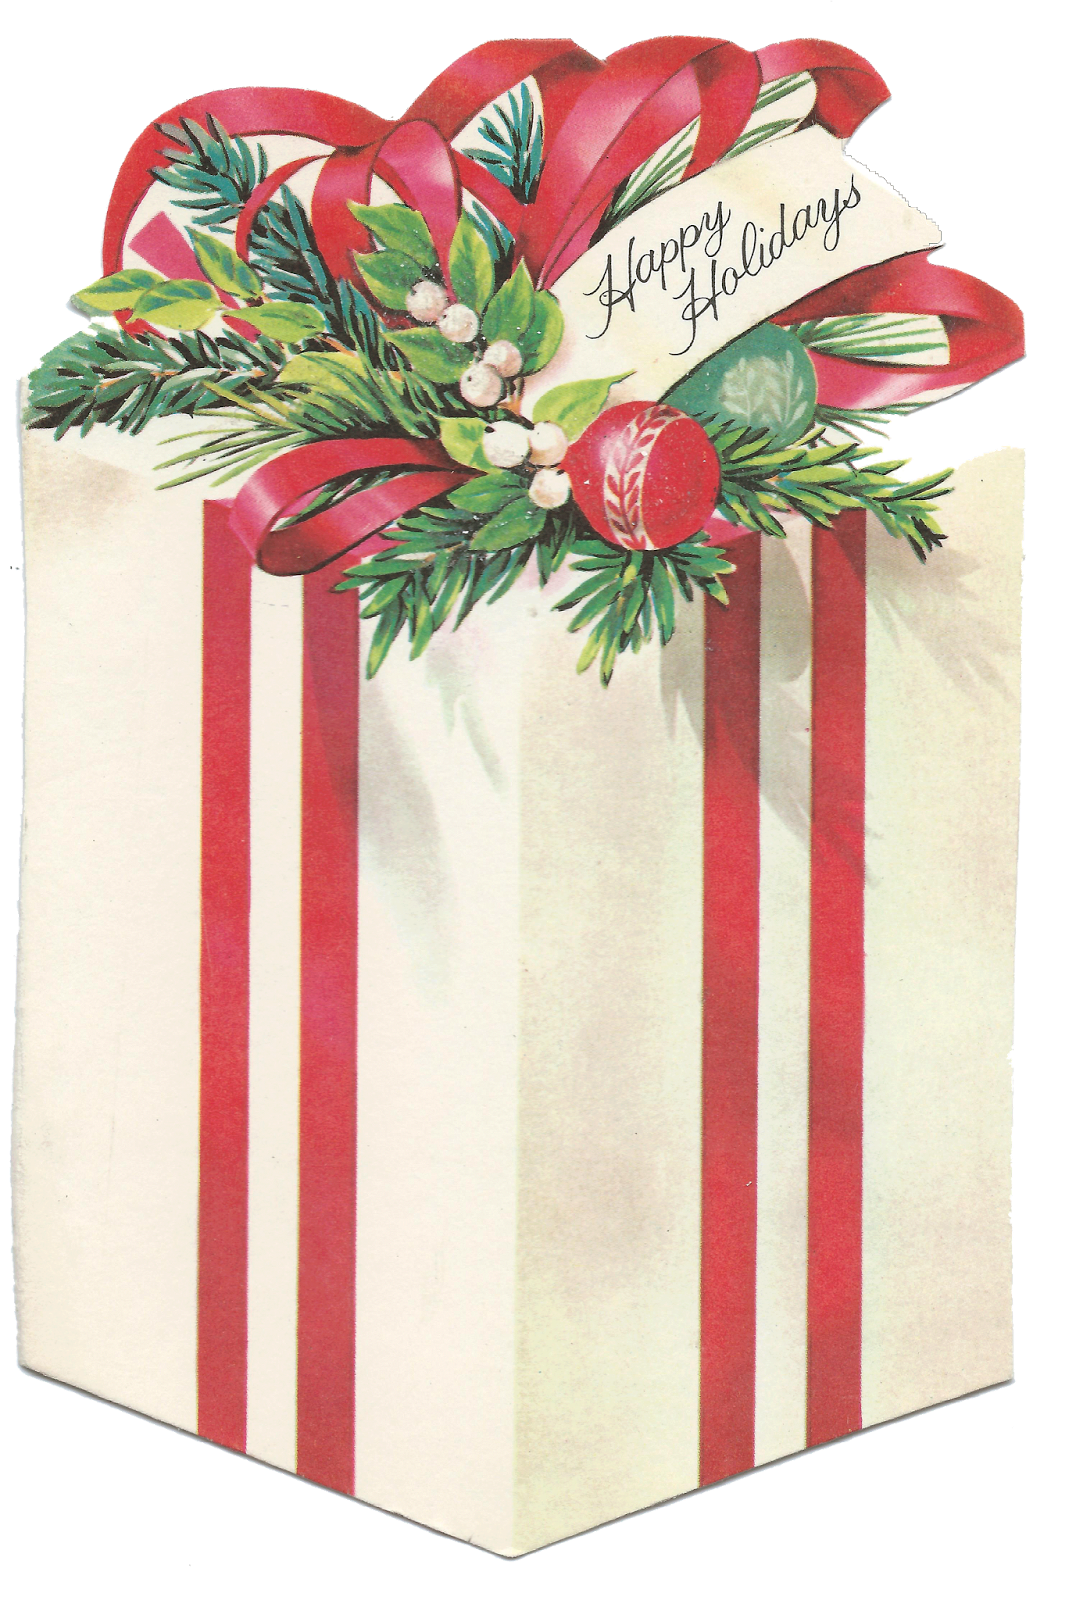 Free vintage christmas clipart vector stock Sweet Magnolias Farm: Vintage Christmas Present, Gift, Package ... vector stock